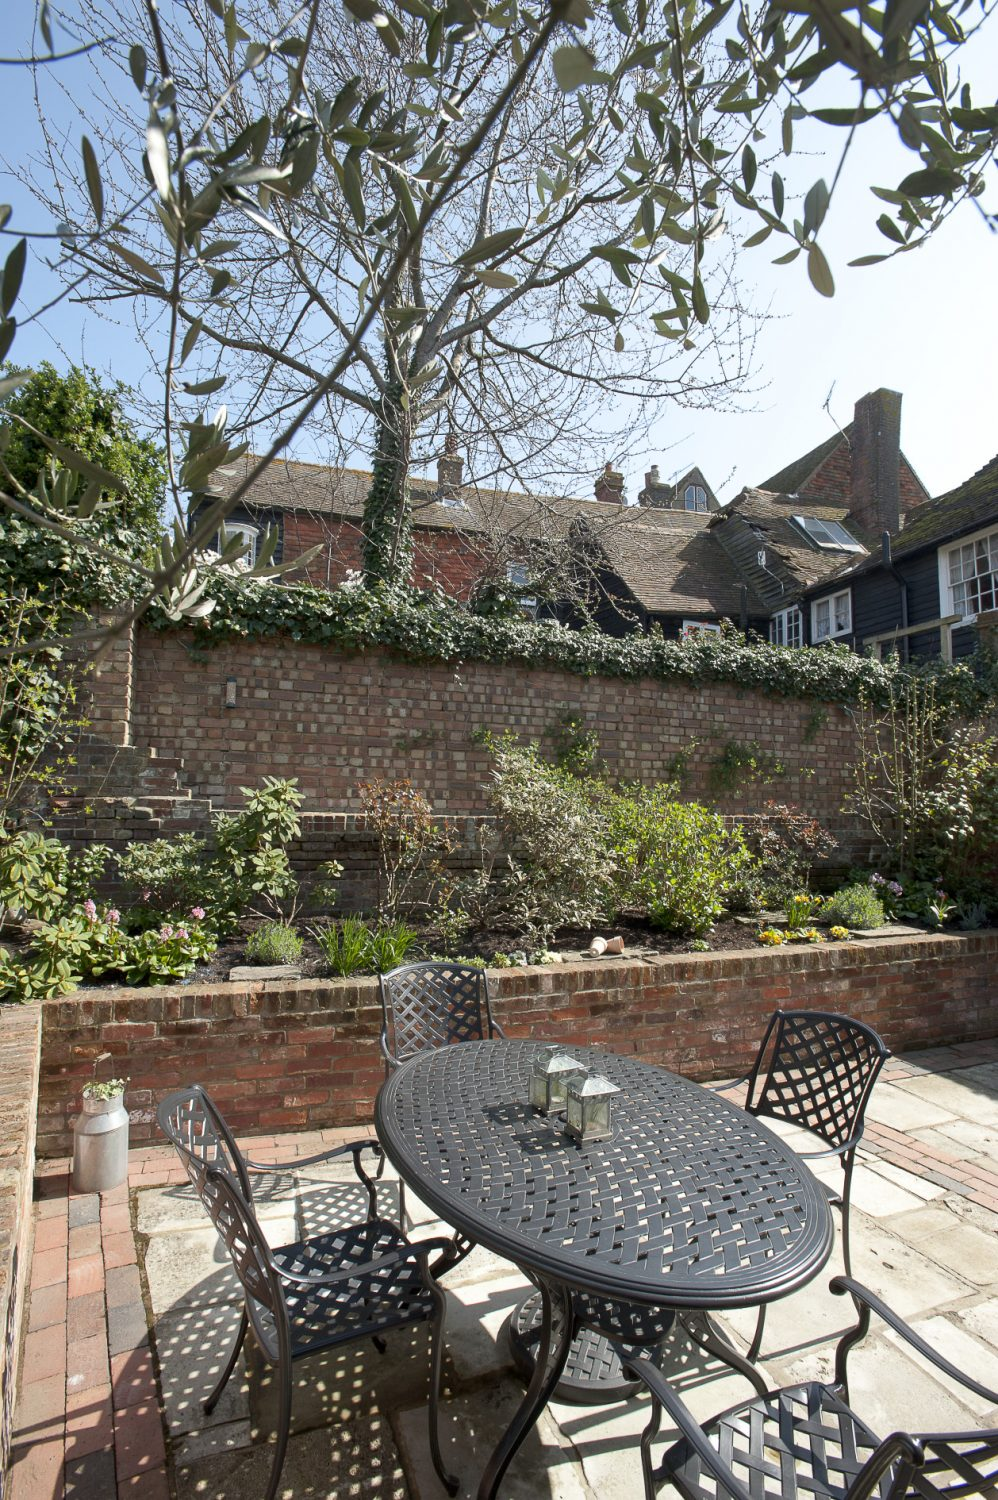 Raised brick beds are planted with hydrangeas, camellias, lavender and pinks